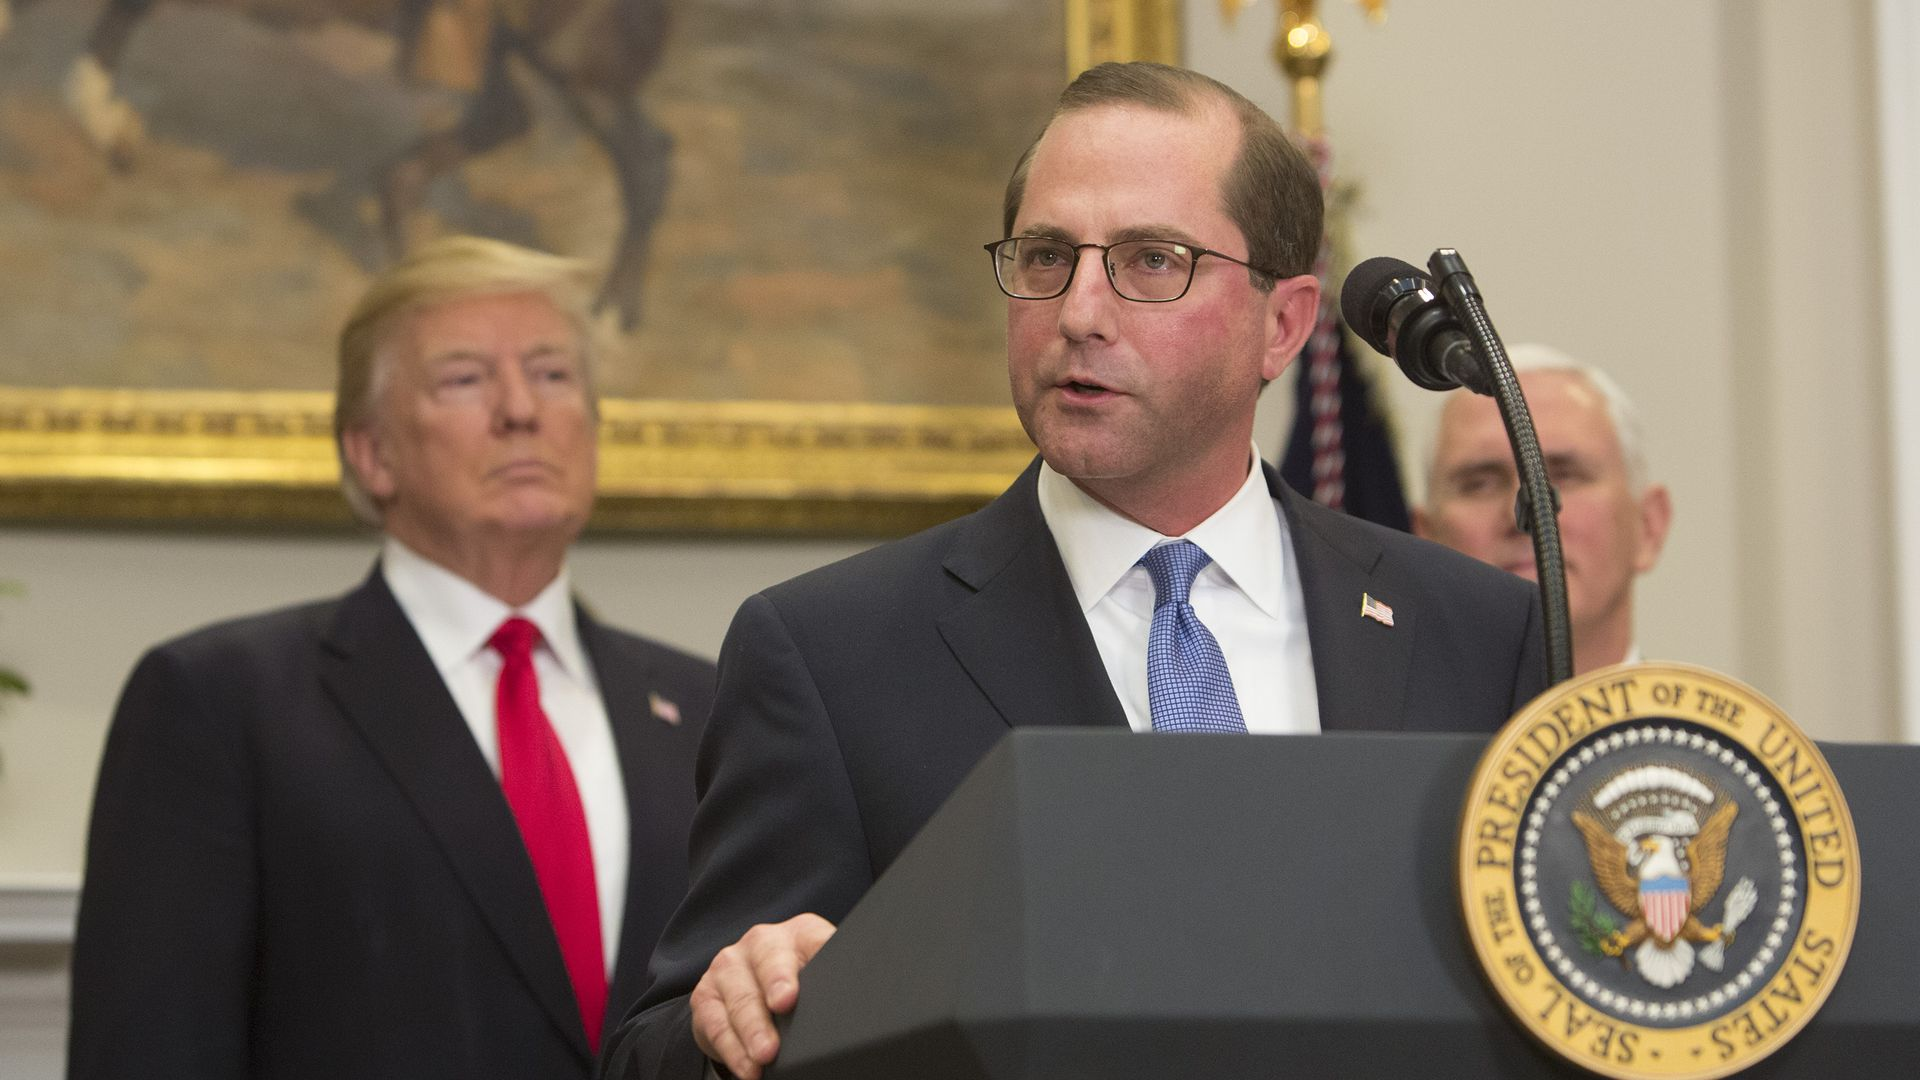 HHS Secretary Alex Azar and President Trump